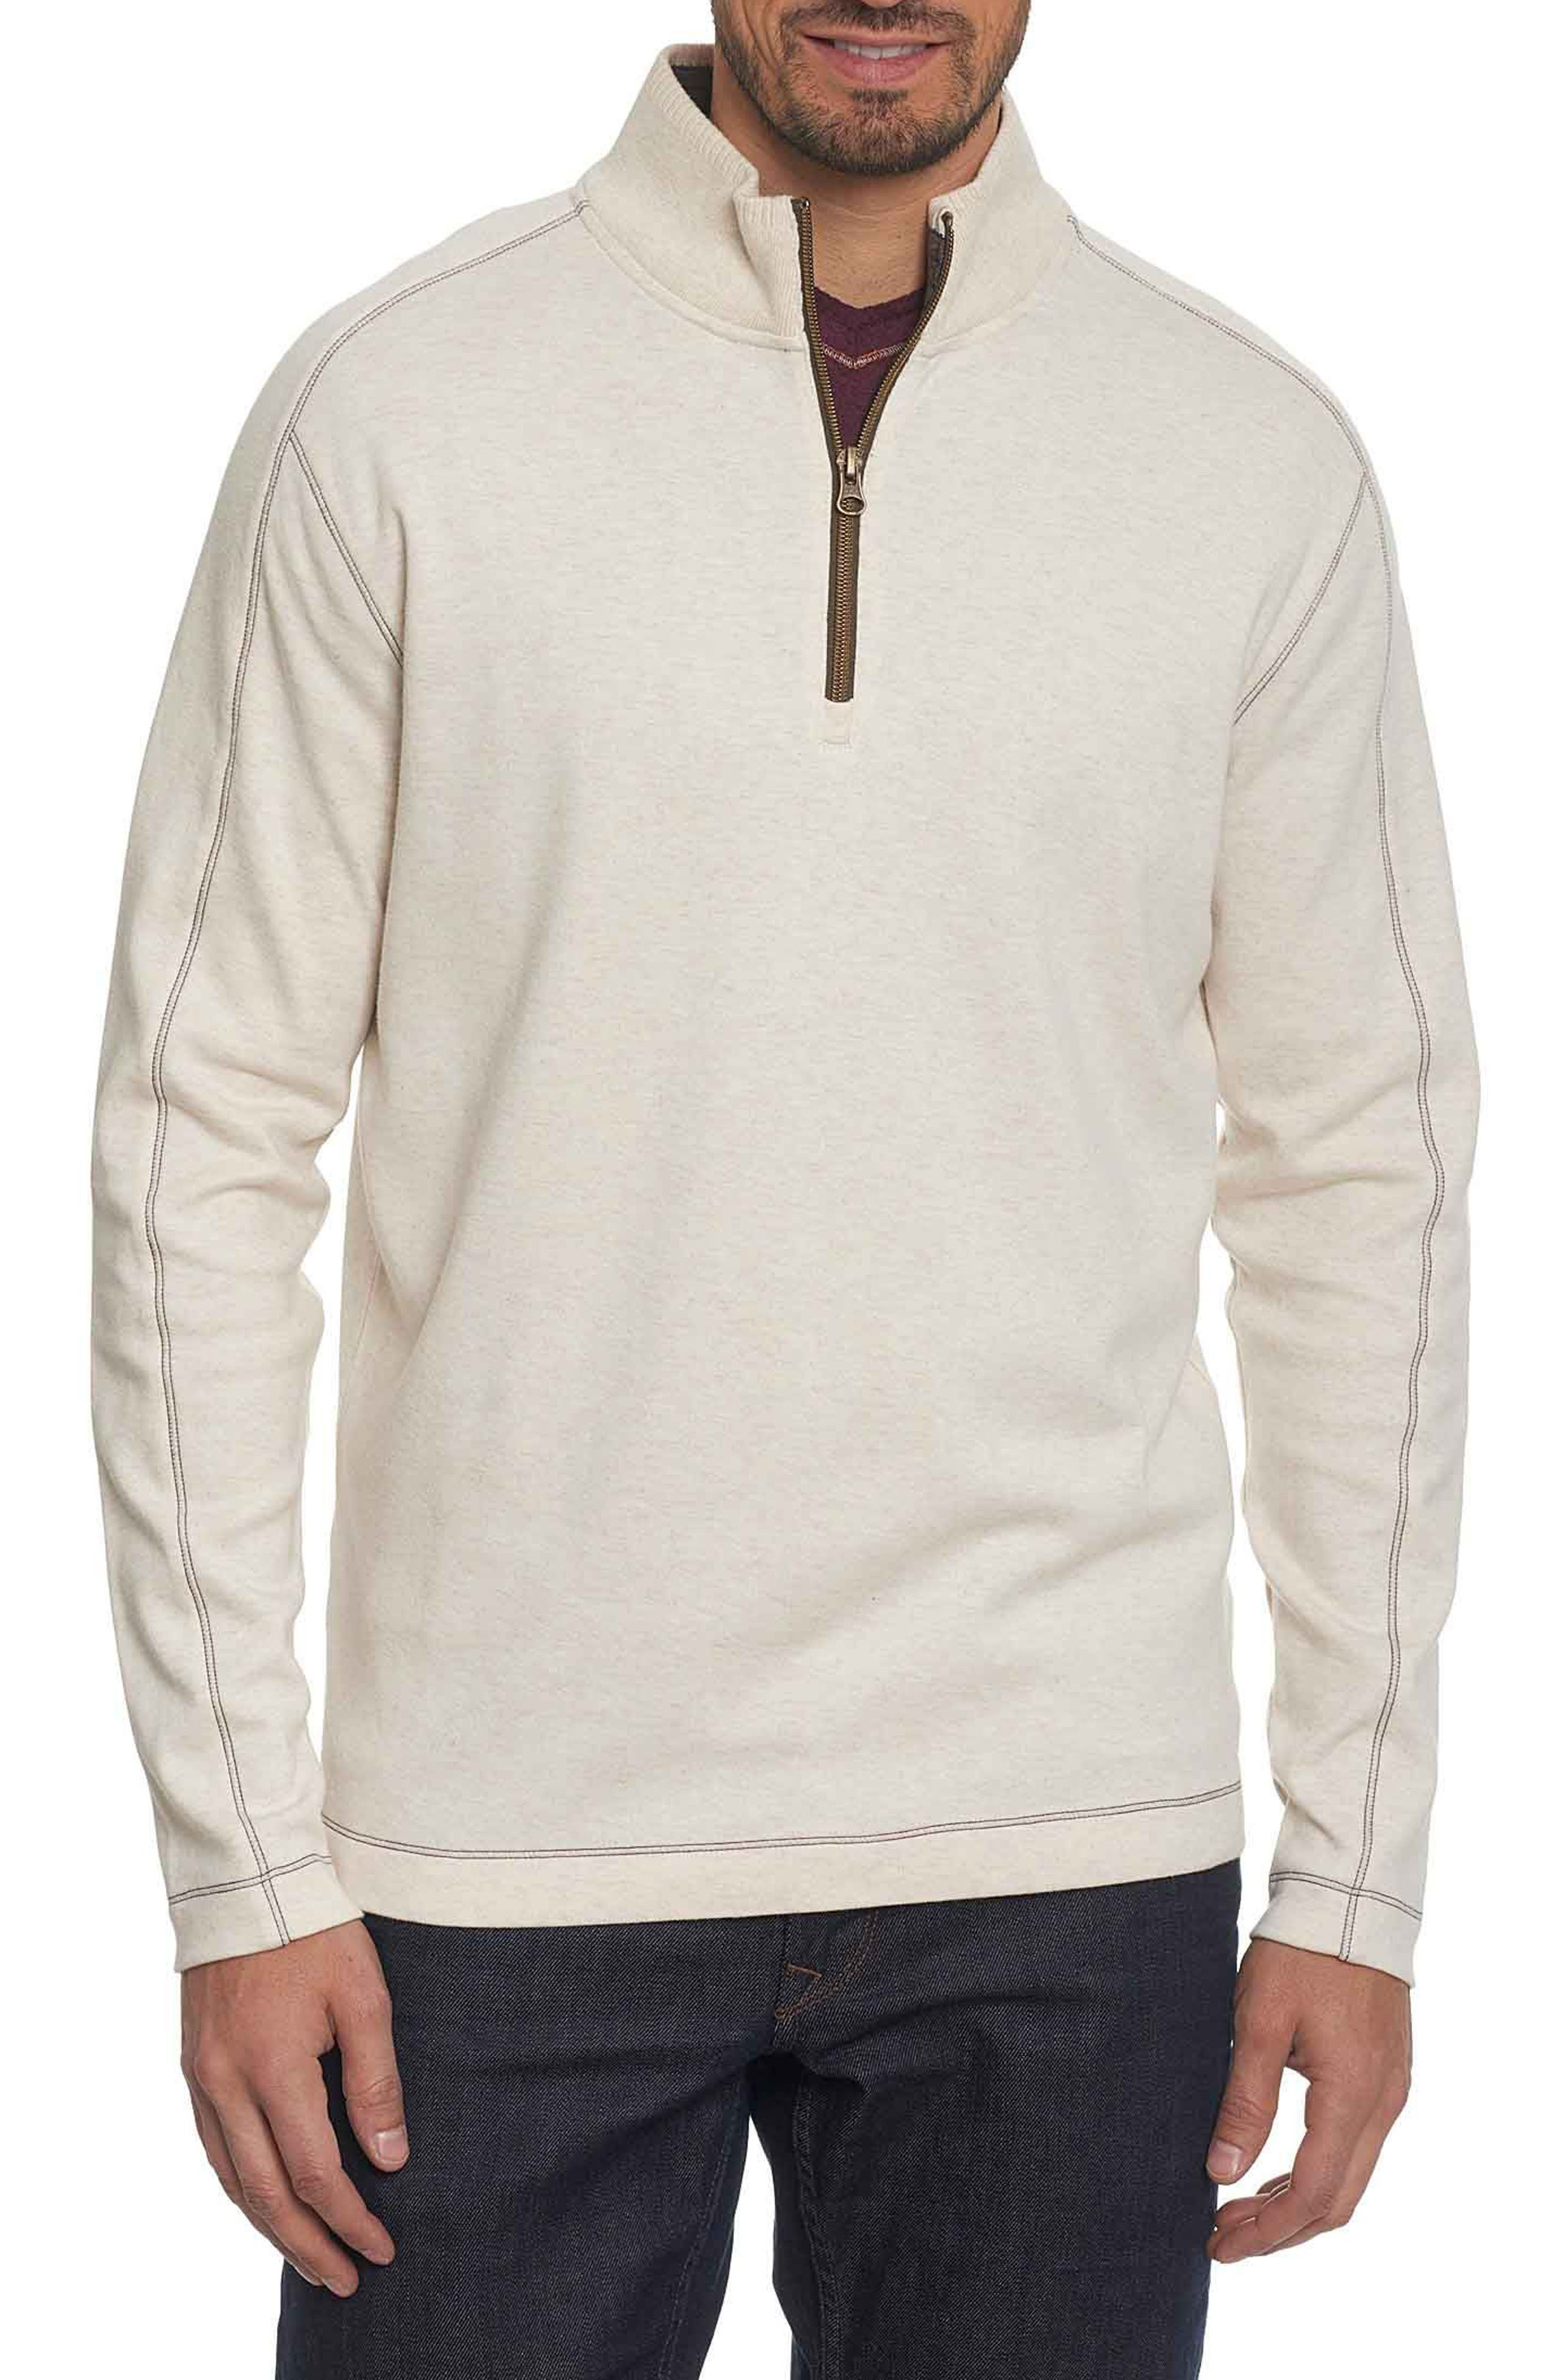 'Elia' Regular Fit Quarter Zip Pullover,                             Main thumbnail 1, color,                             113